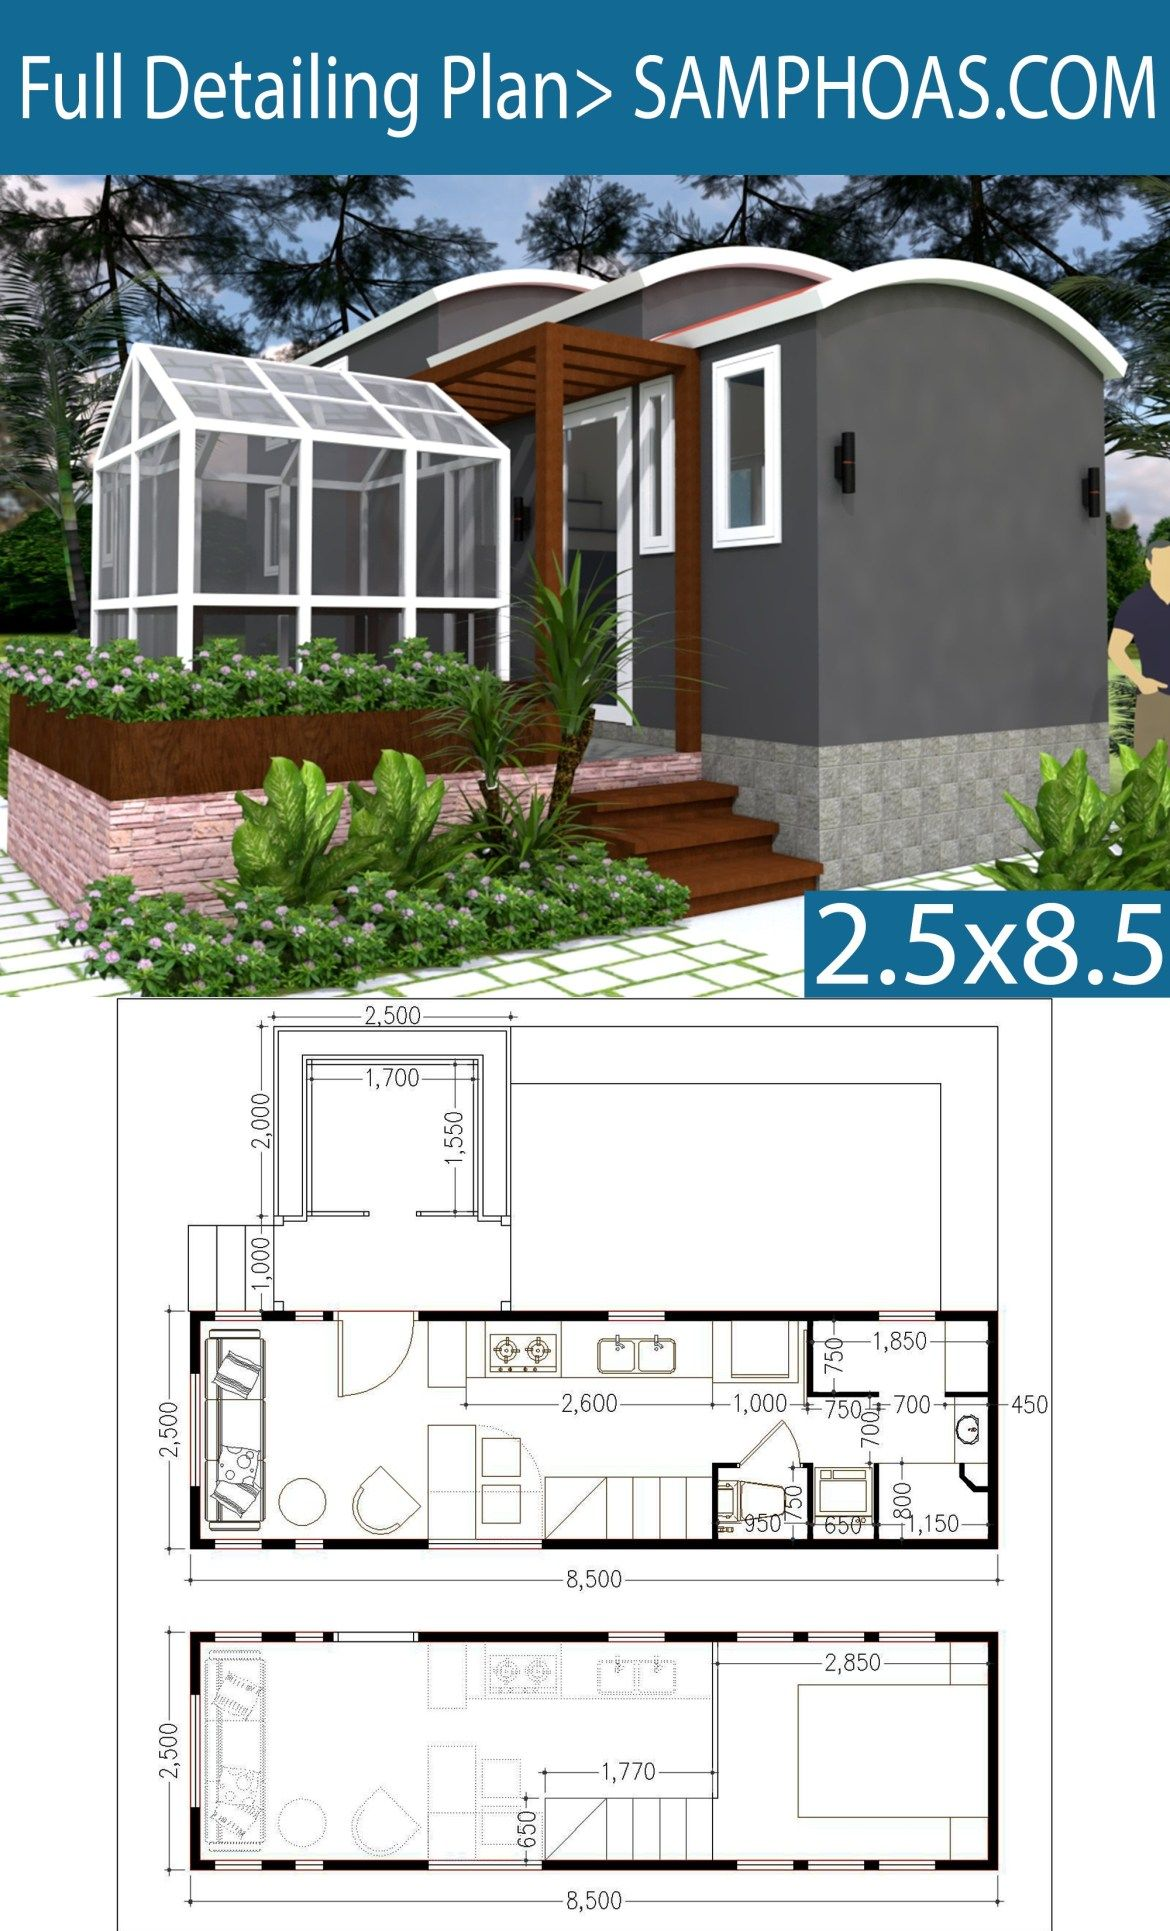 Dream Tiny House With Green House And Interior Design Samphoas Plansearch Eco House Plans Home Design Plans House Plans